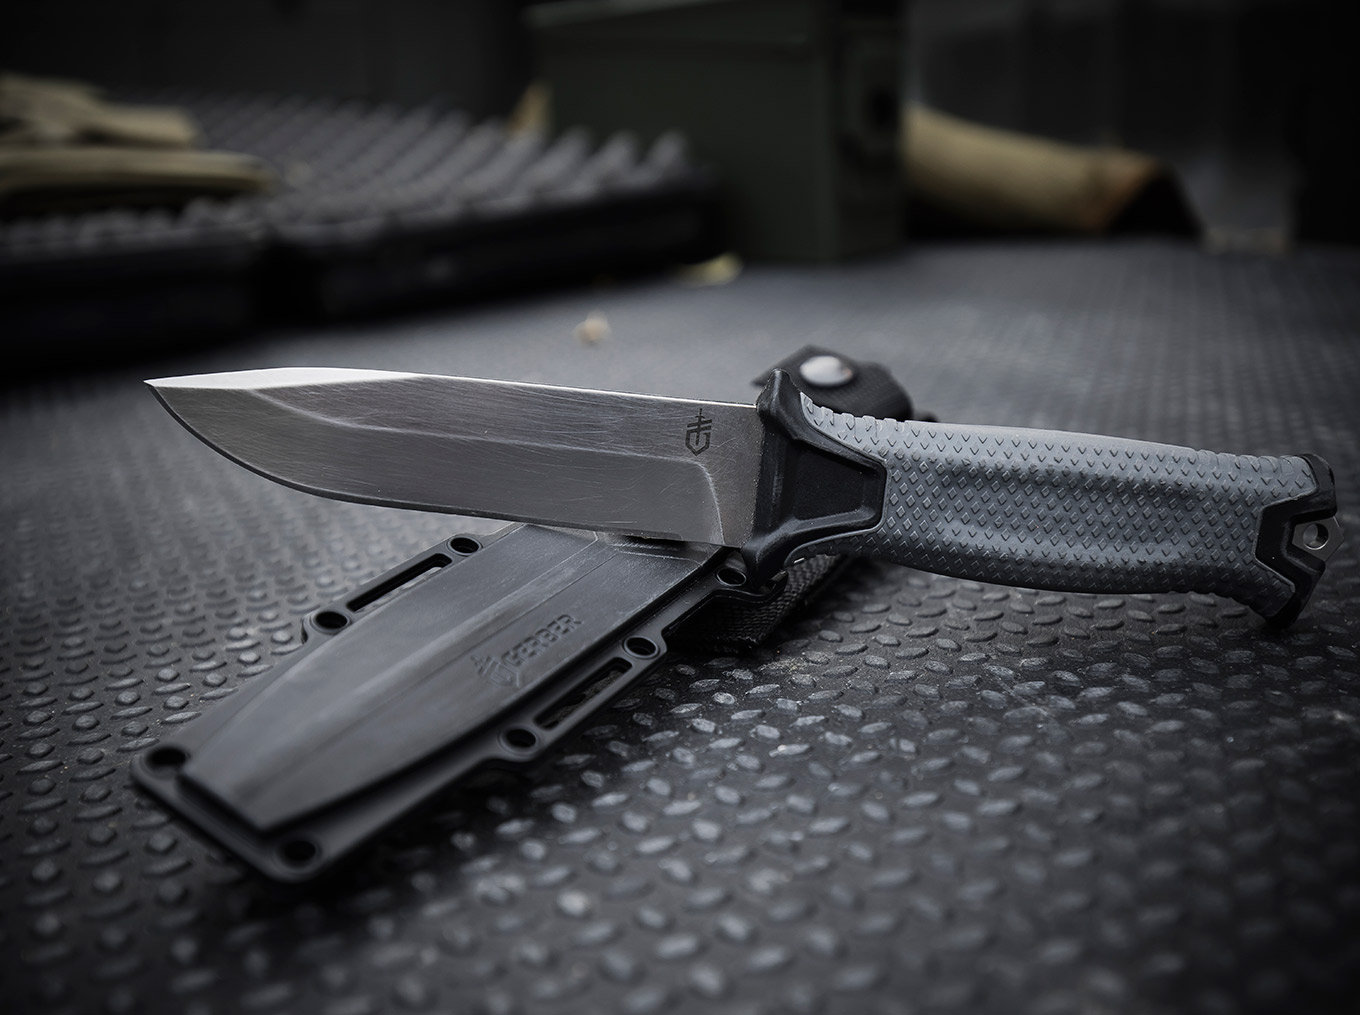 American Upgrade: Gerber Strongarm Limited Edition